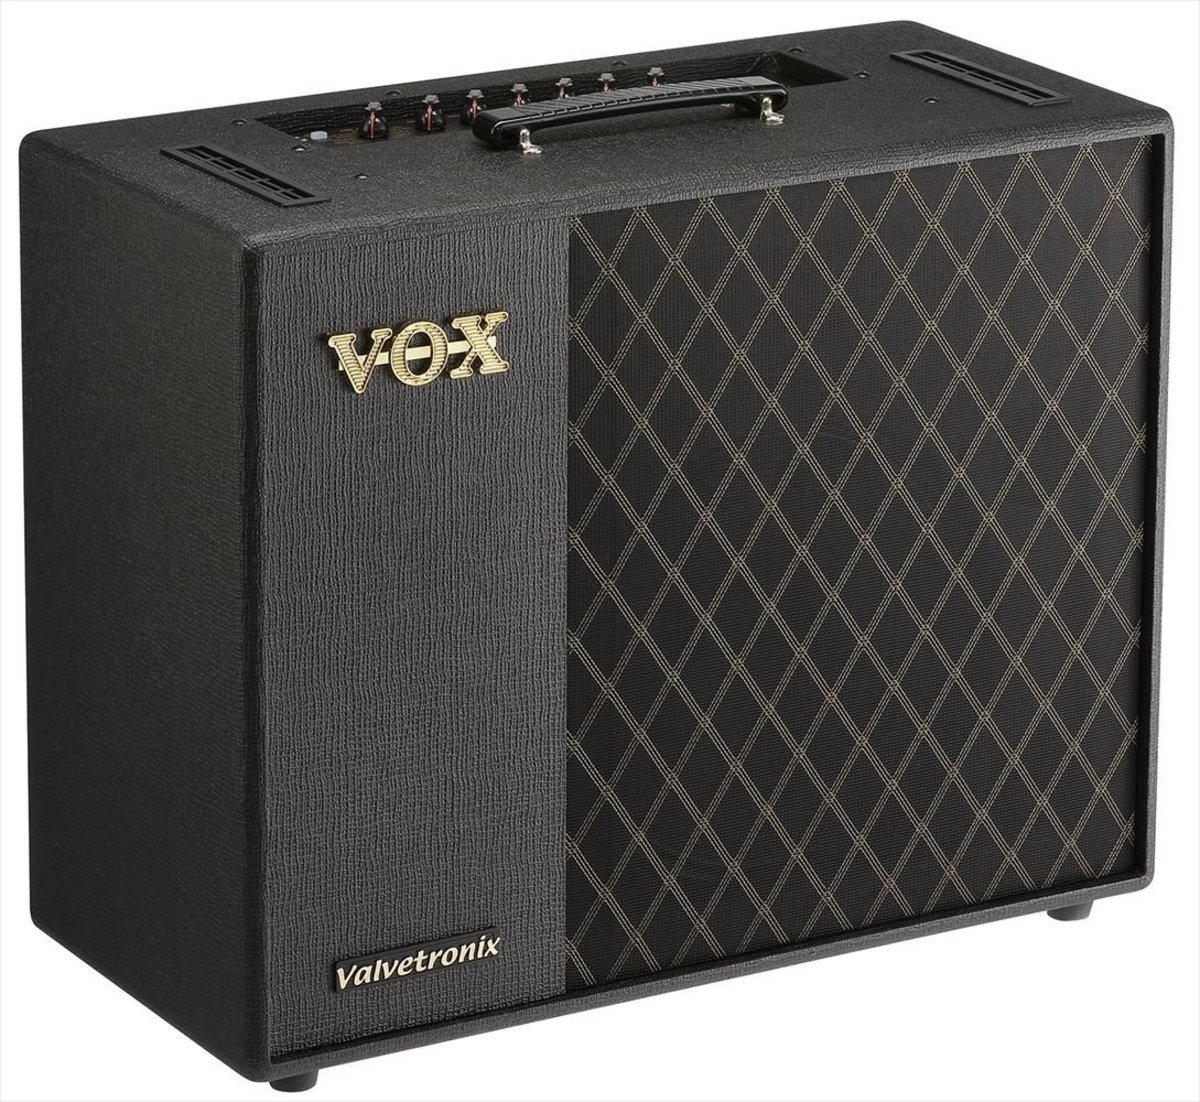 VOX Valvetronix VTX Series Guitar Amp Review